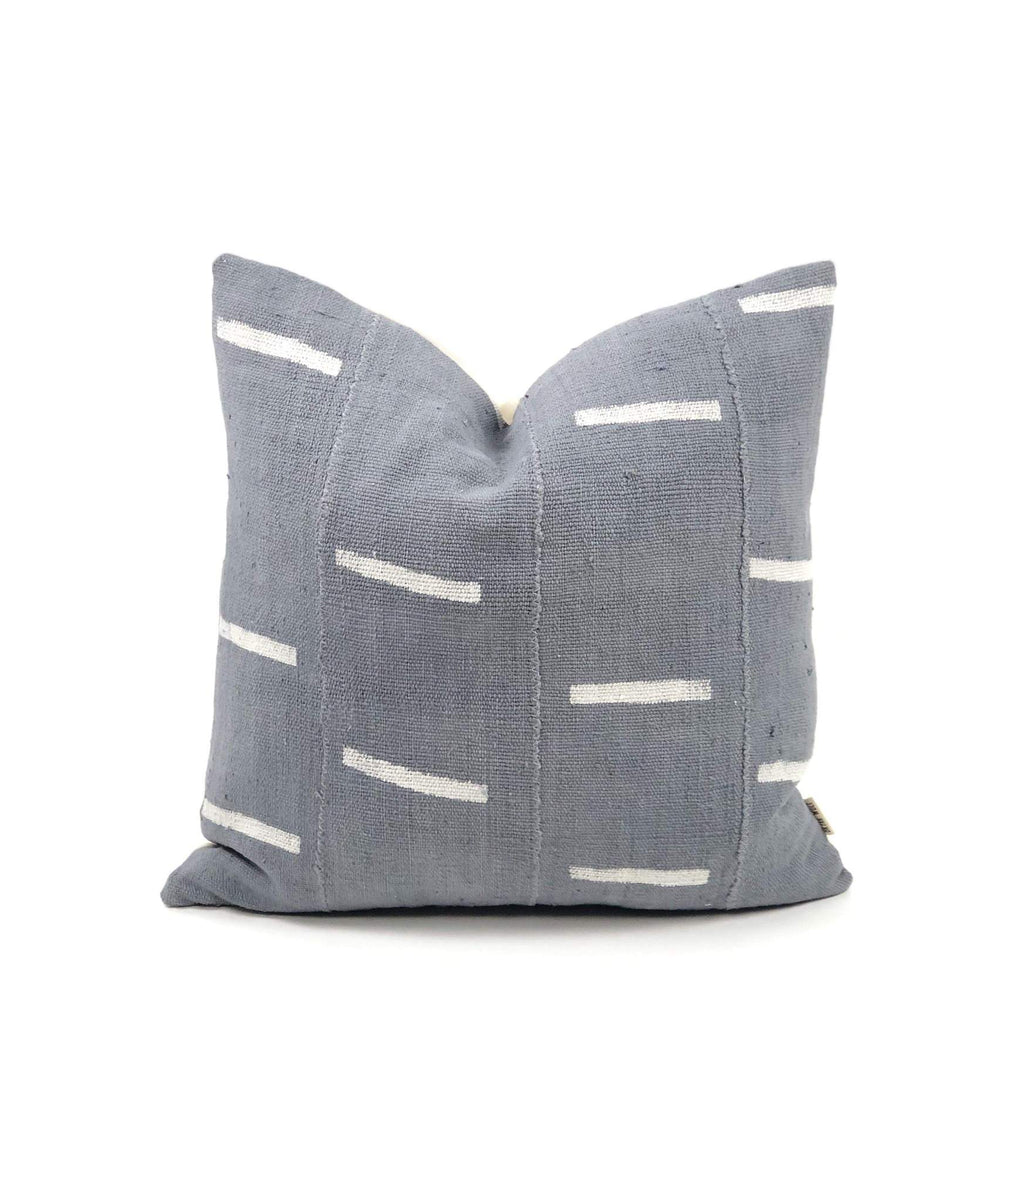 Afia Pillow